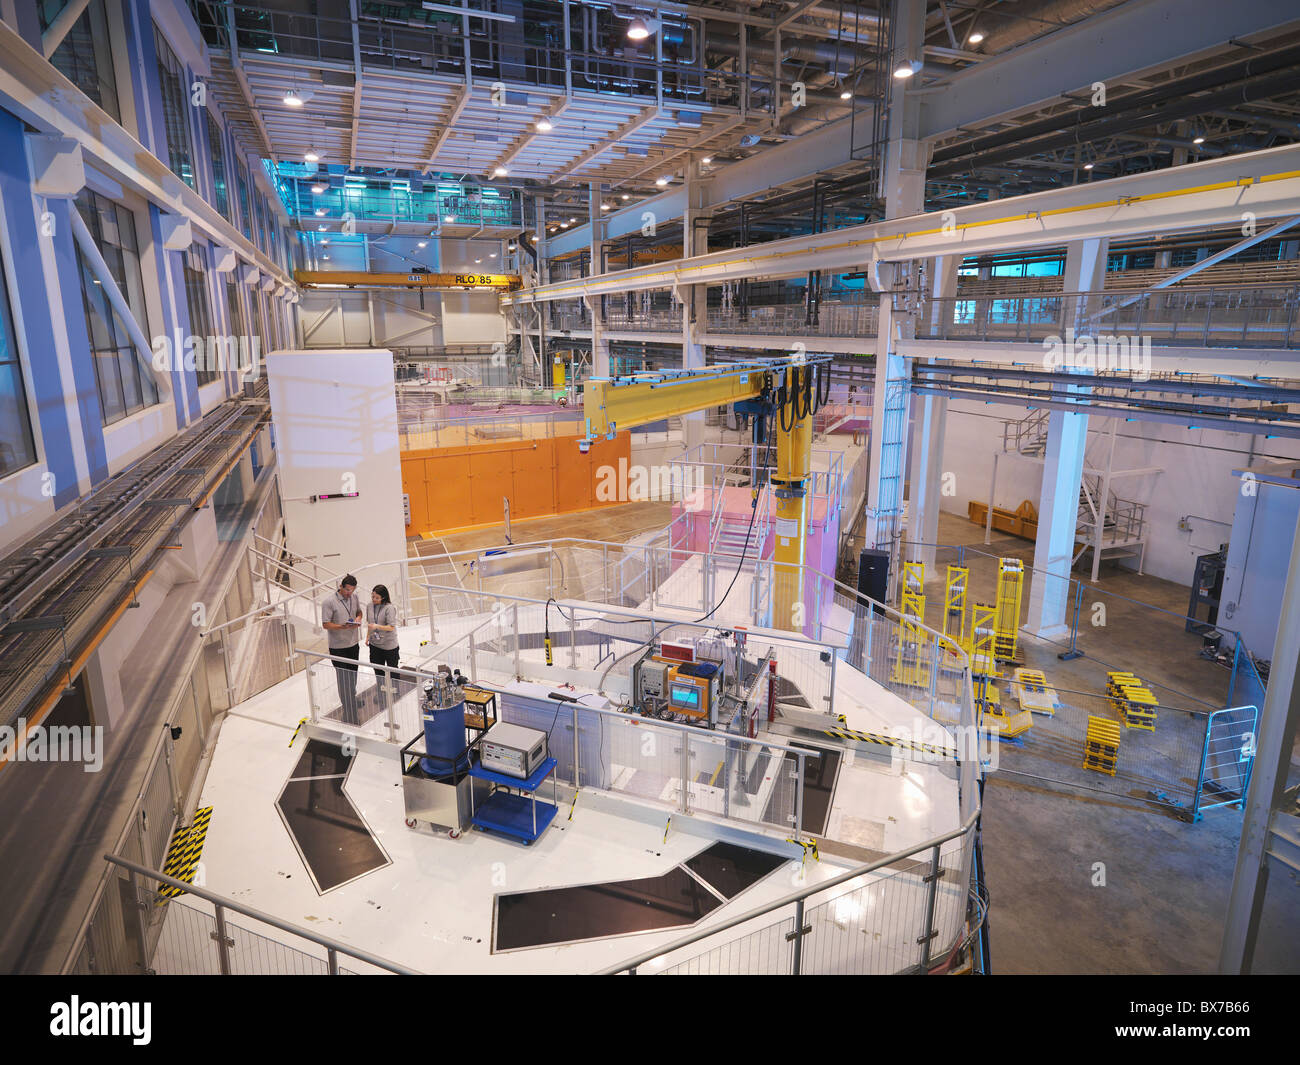 Scientists on particle accelerator - Stock Image